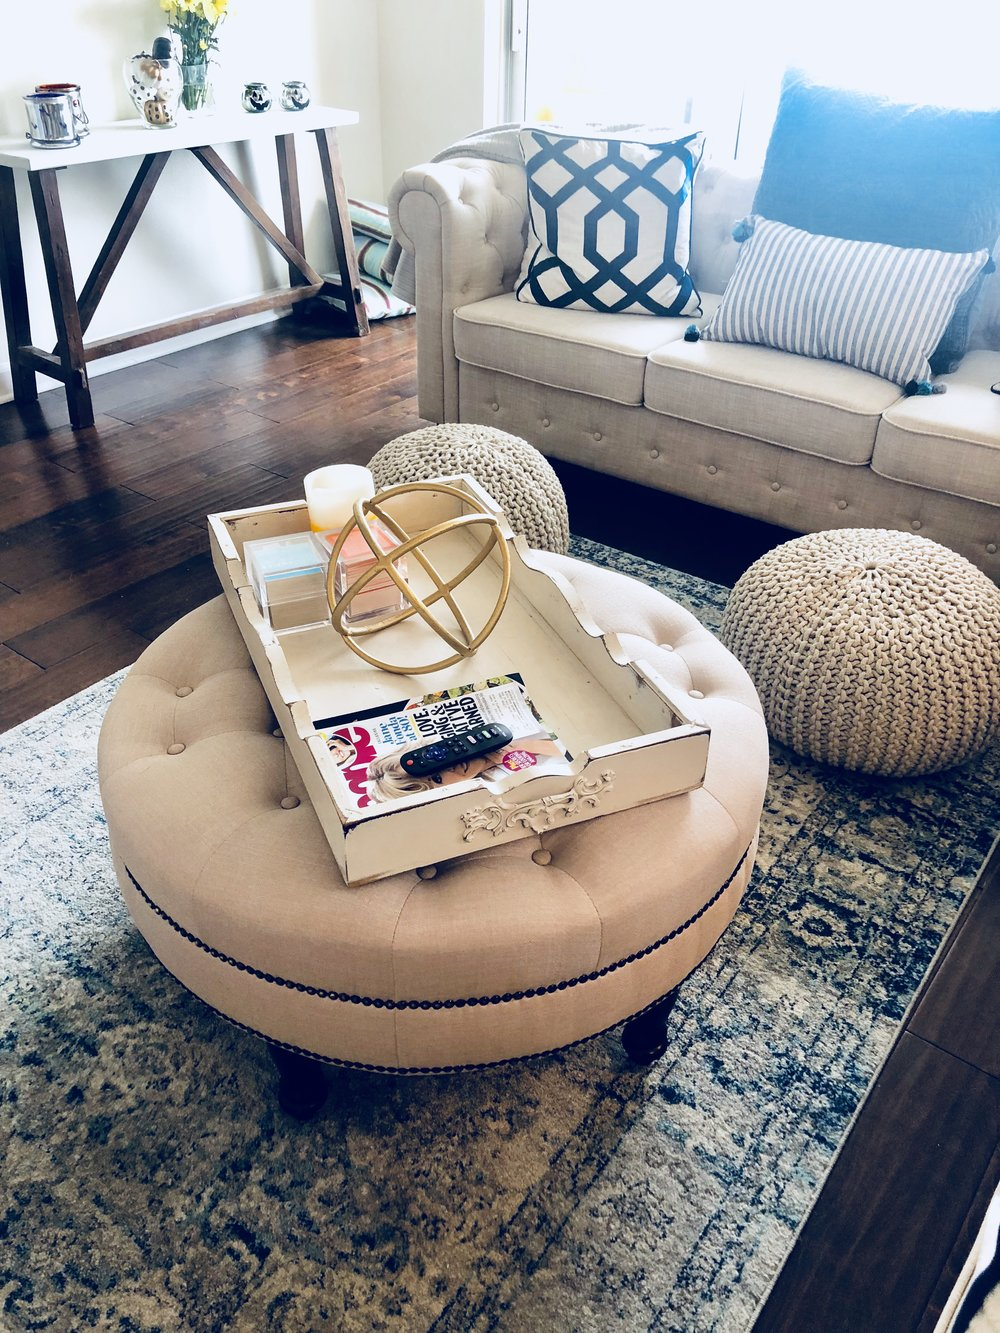 Loving our cozy living room - thanks to Wayfair